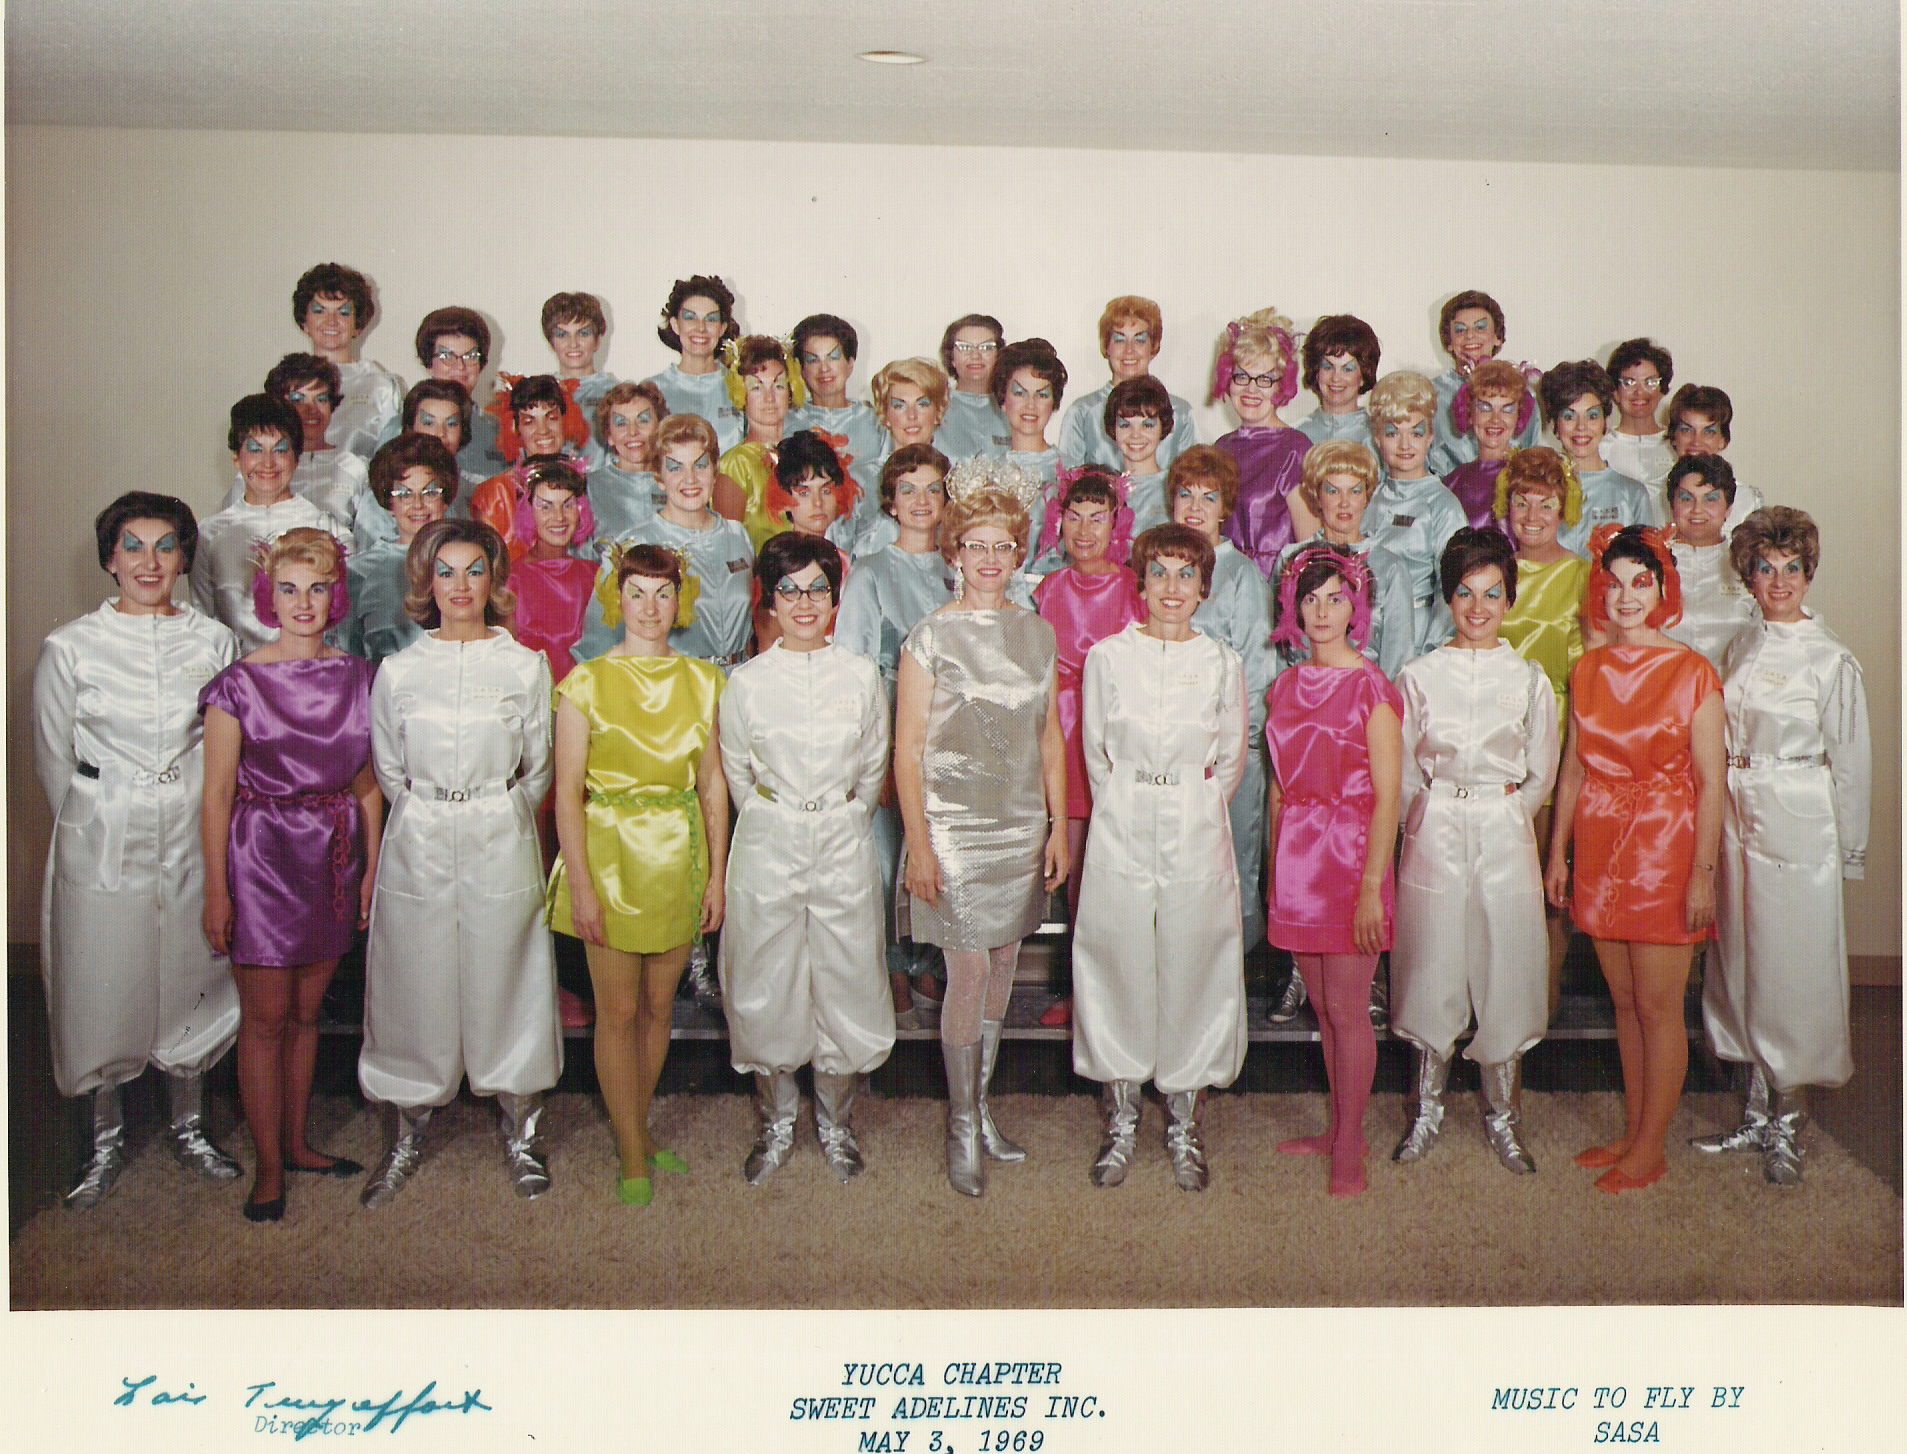 1968 Sweet Adelines Convention